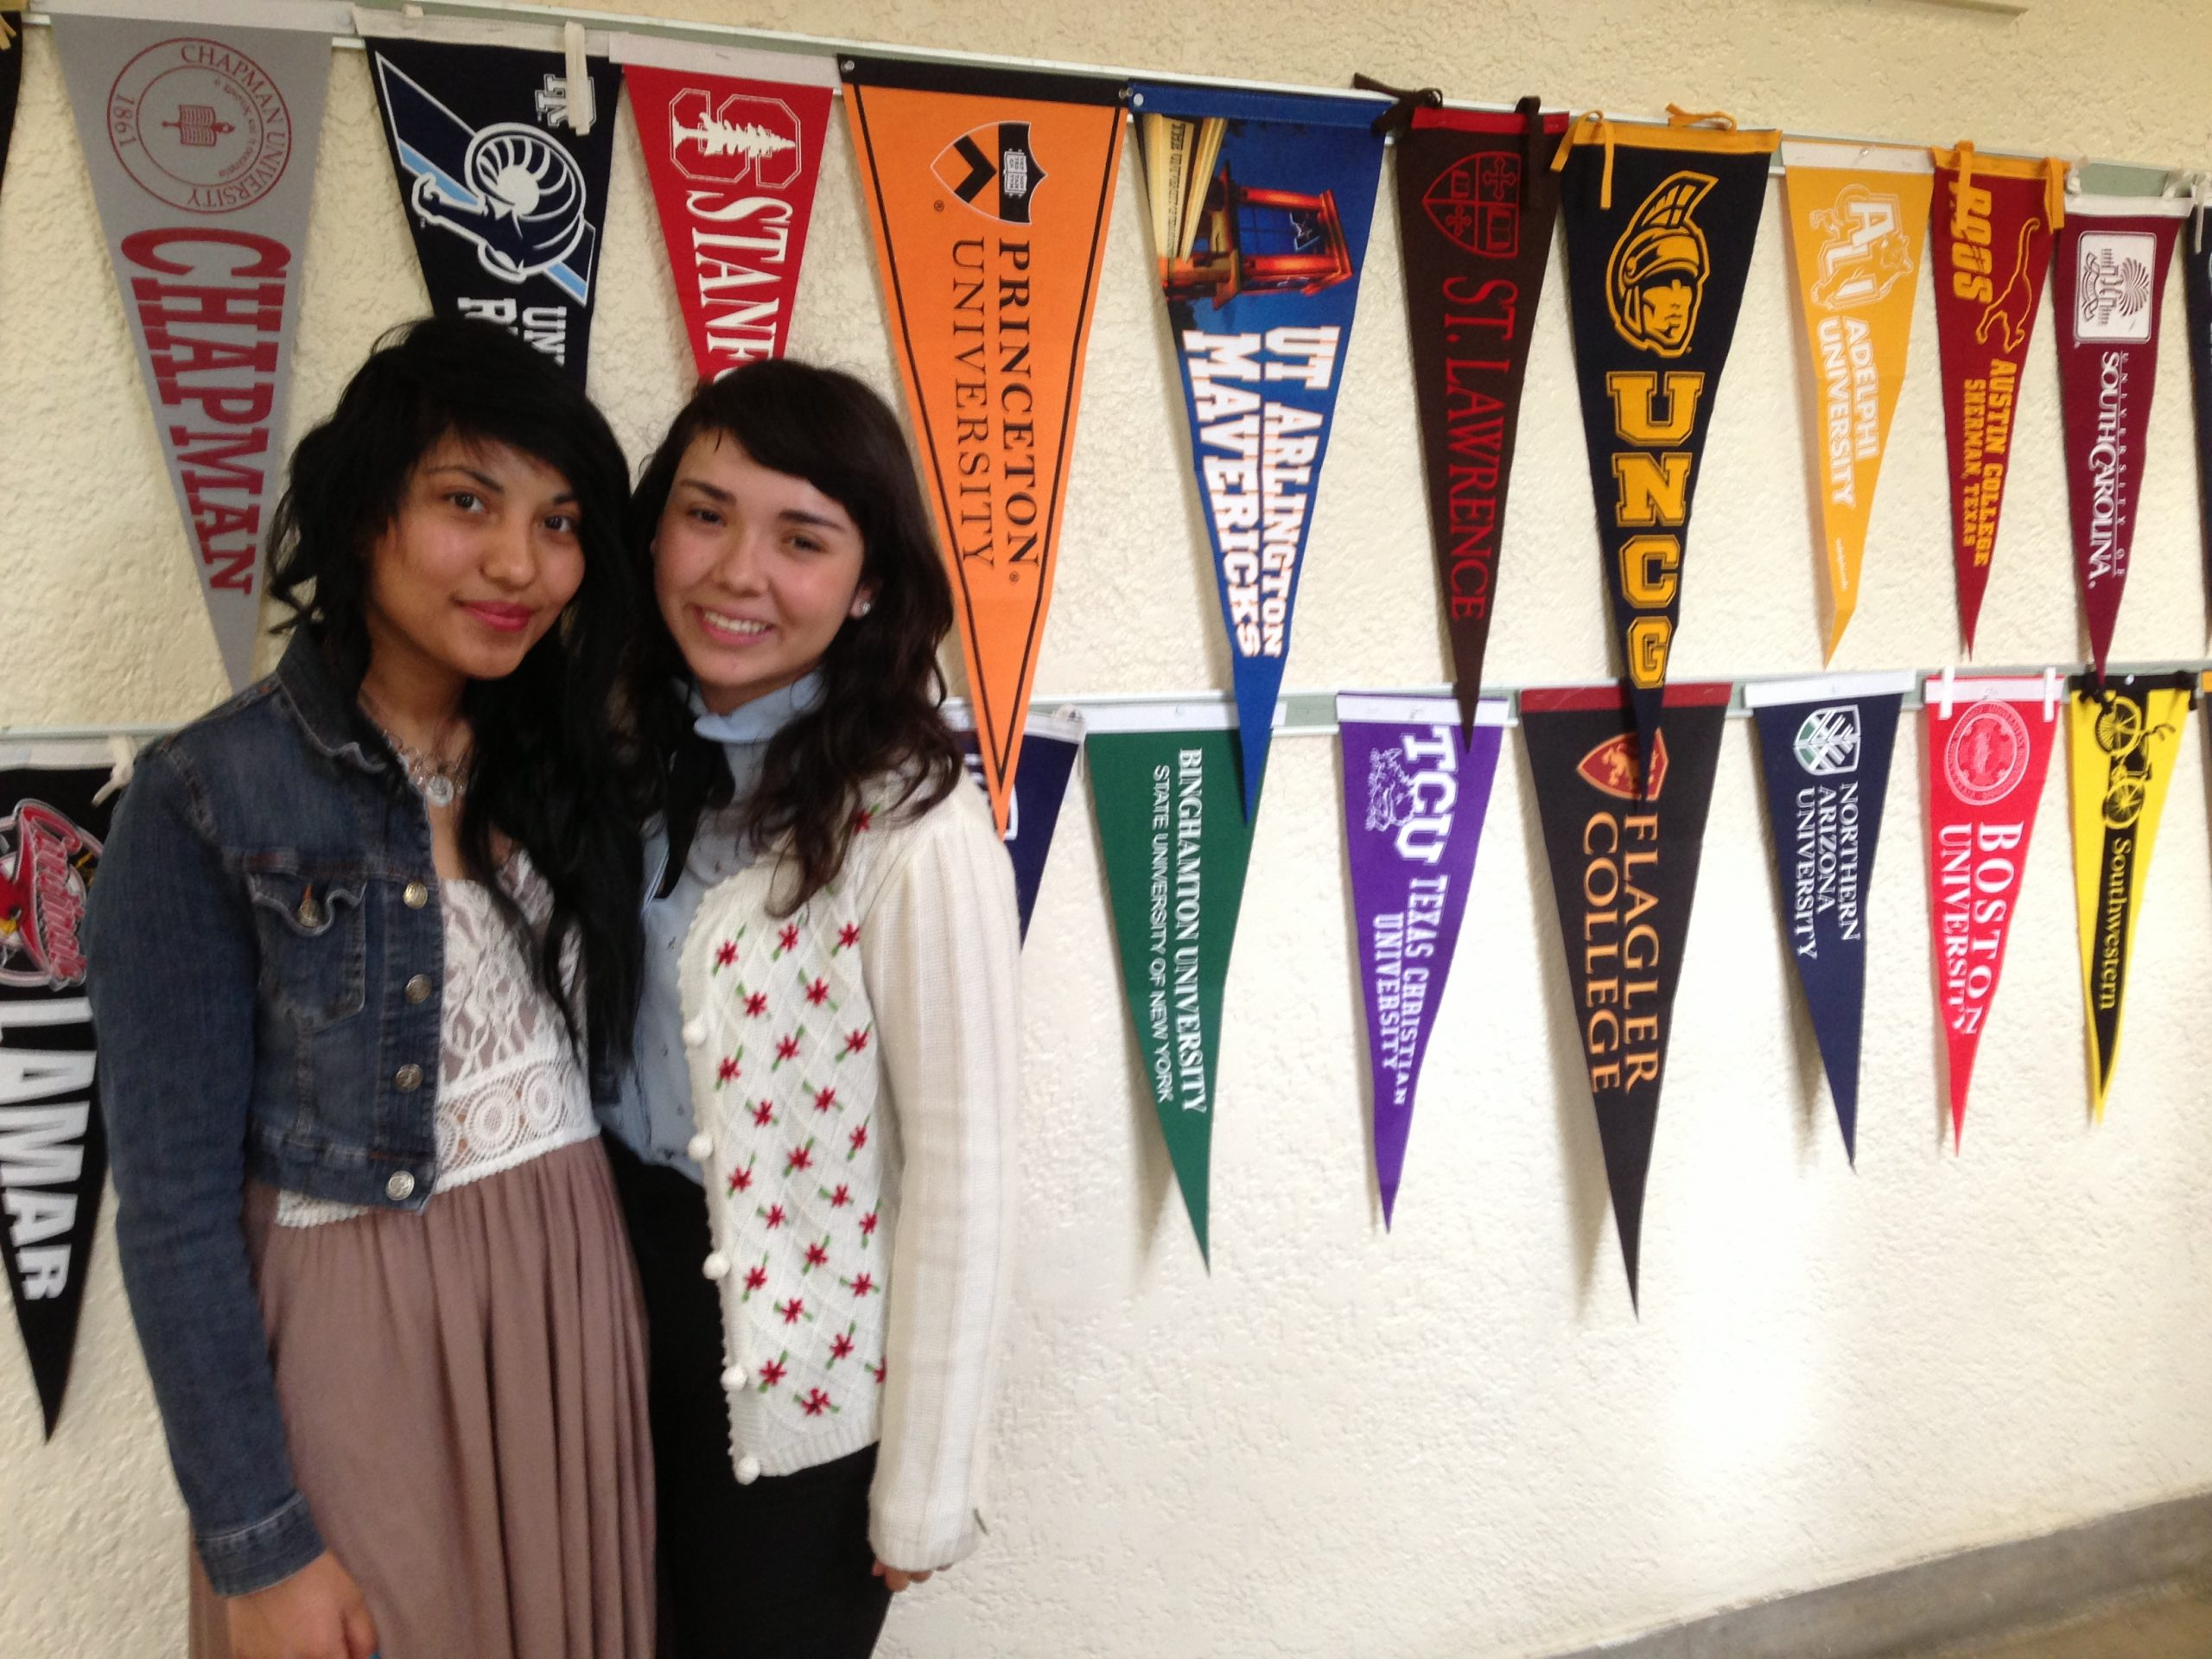 Maritza Alvarez and Nancy Vargas are college bound and loving it at Travis Early College High School. Photo by Bekah McNeel.